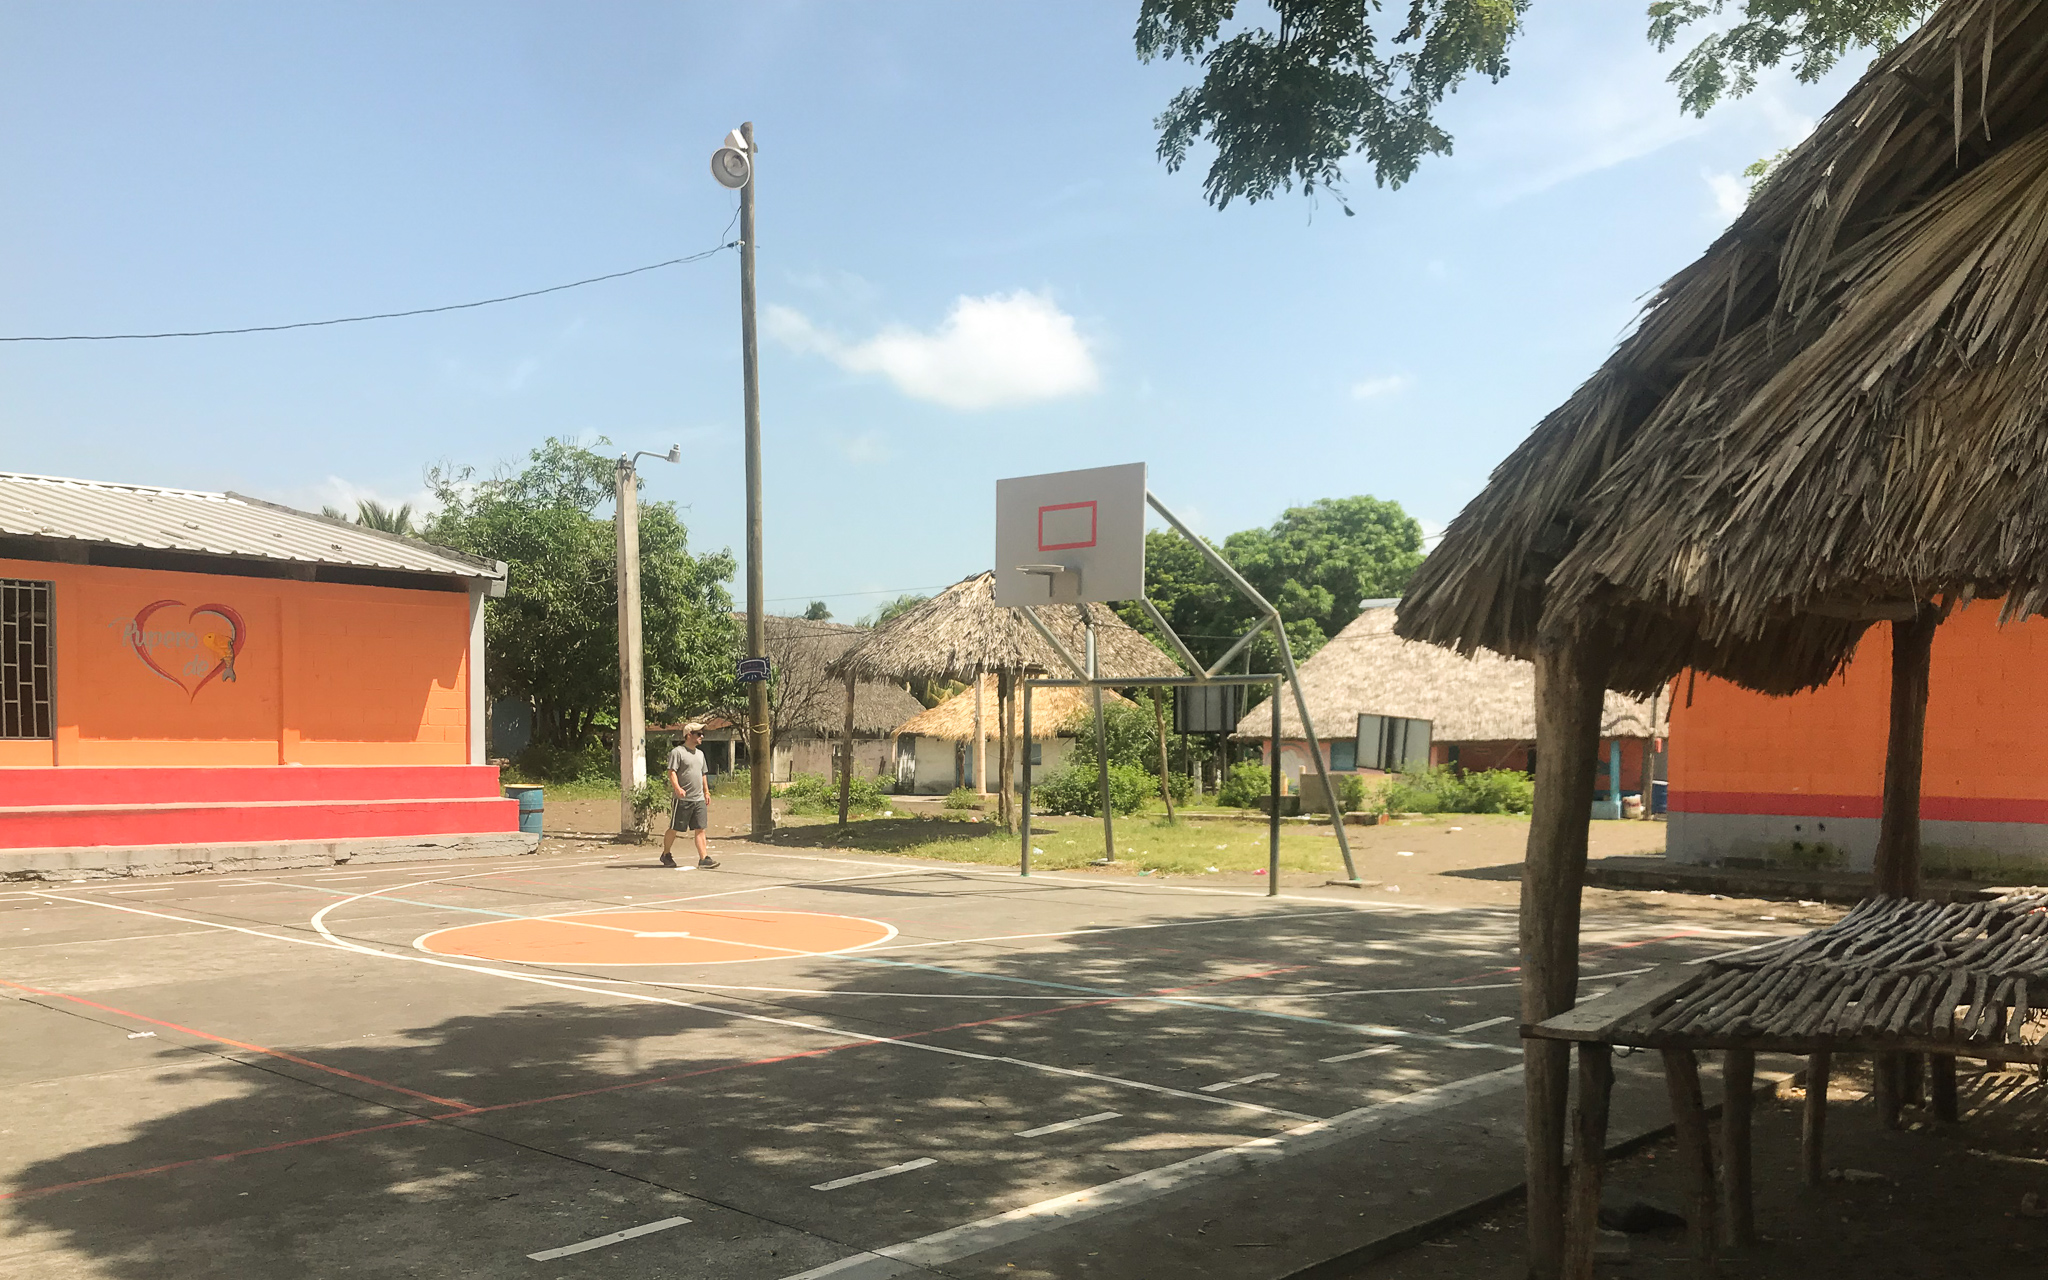 El Paredon outdoor basketball court in Guatemala